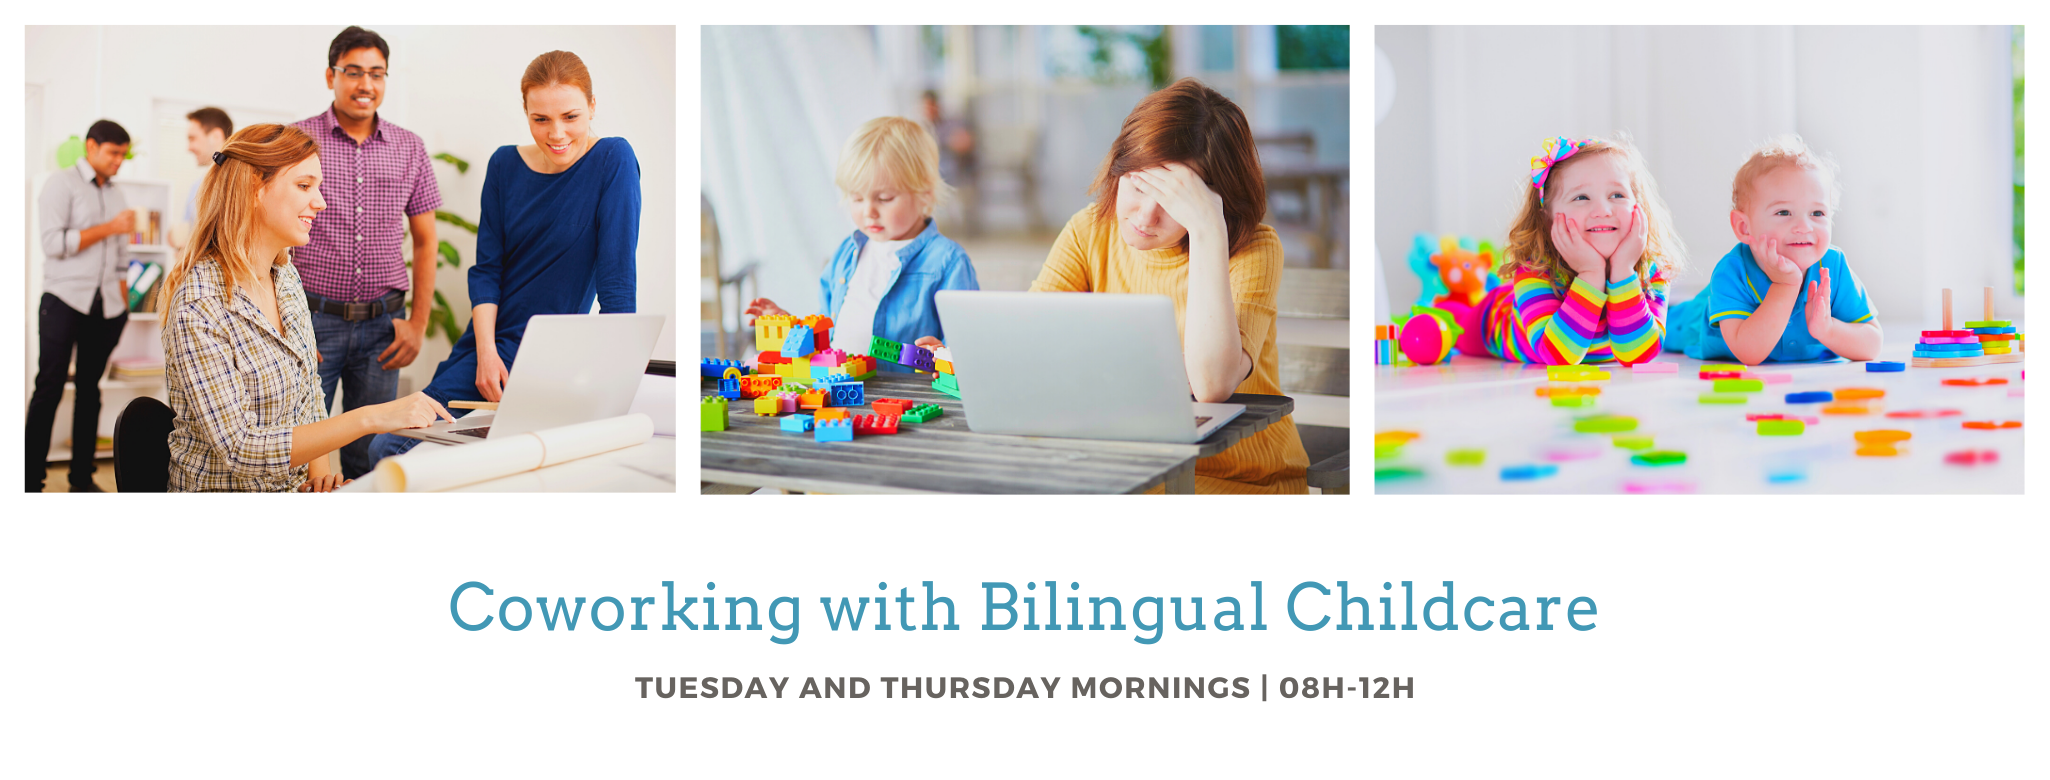 Coworking with childcare Blonay Vevey Montreux